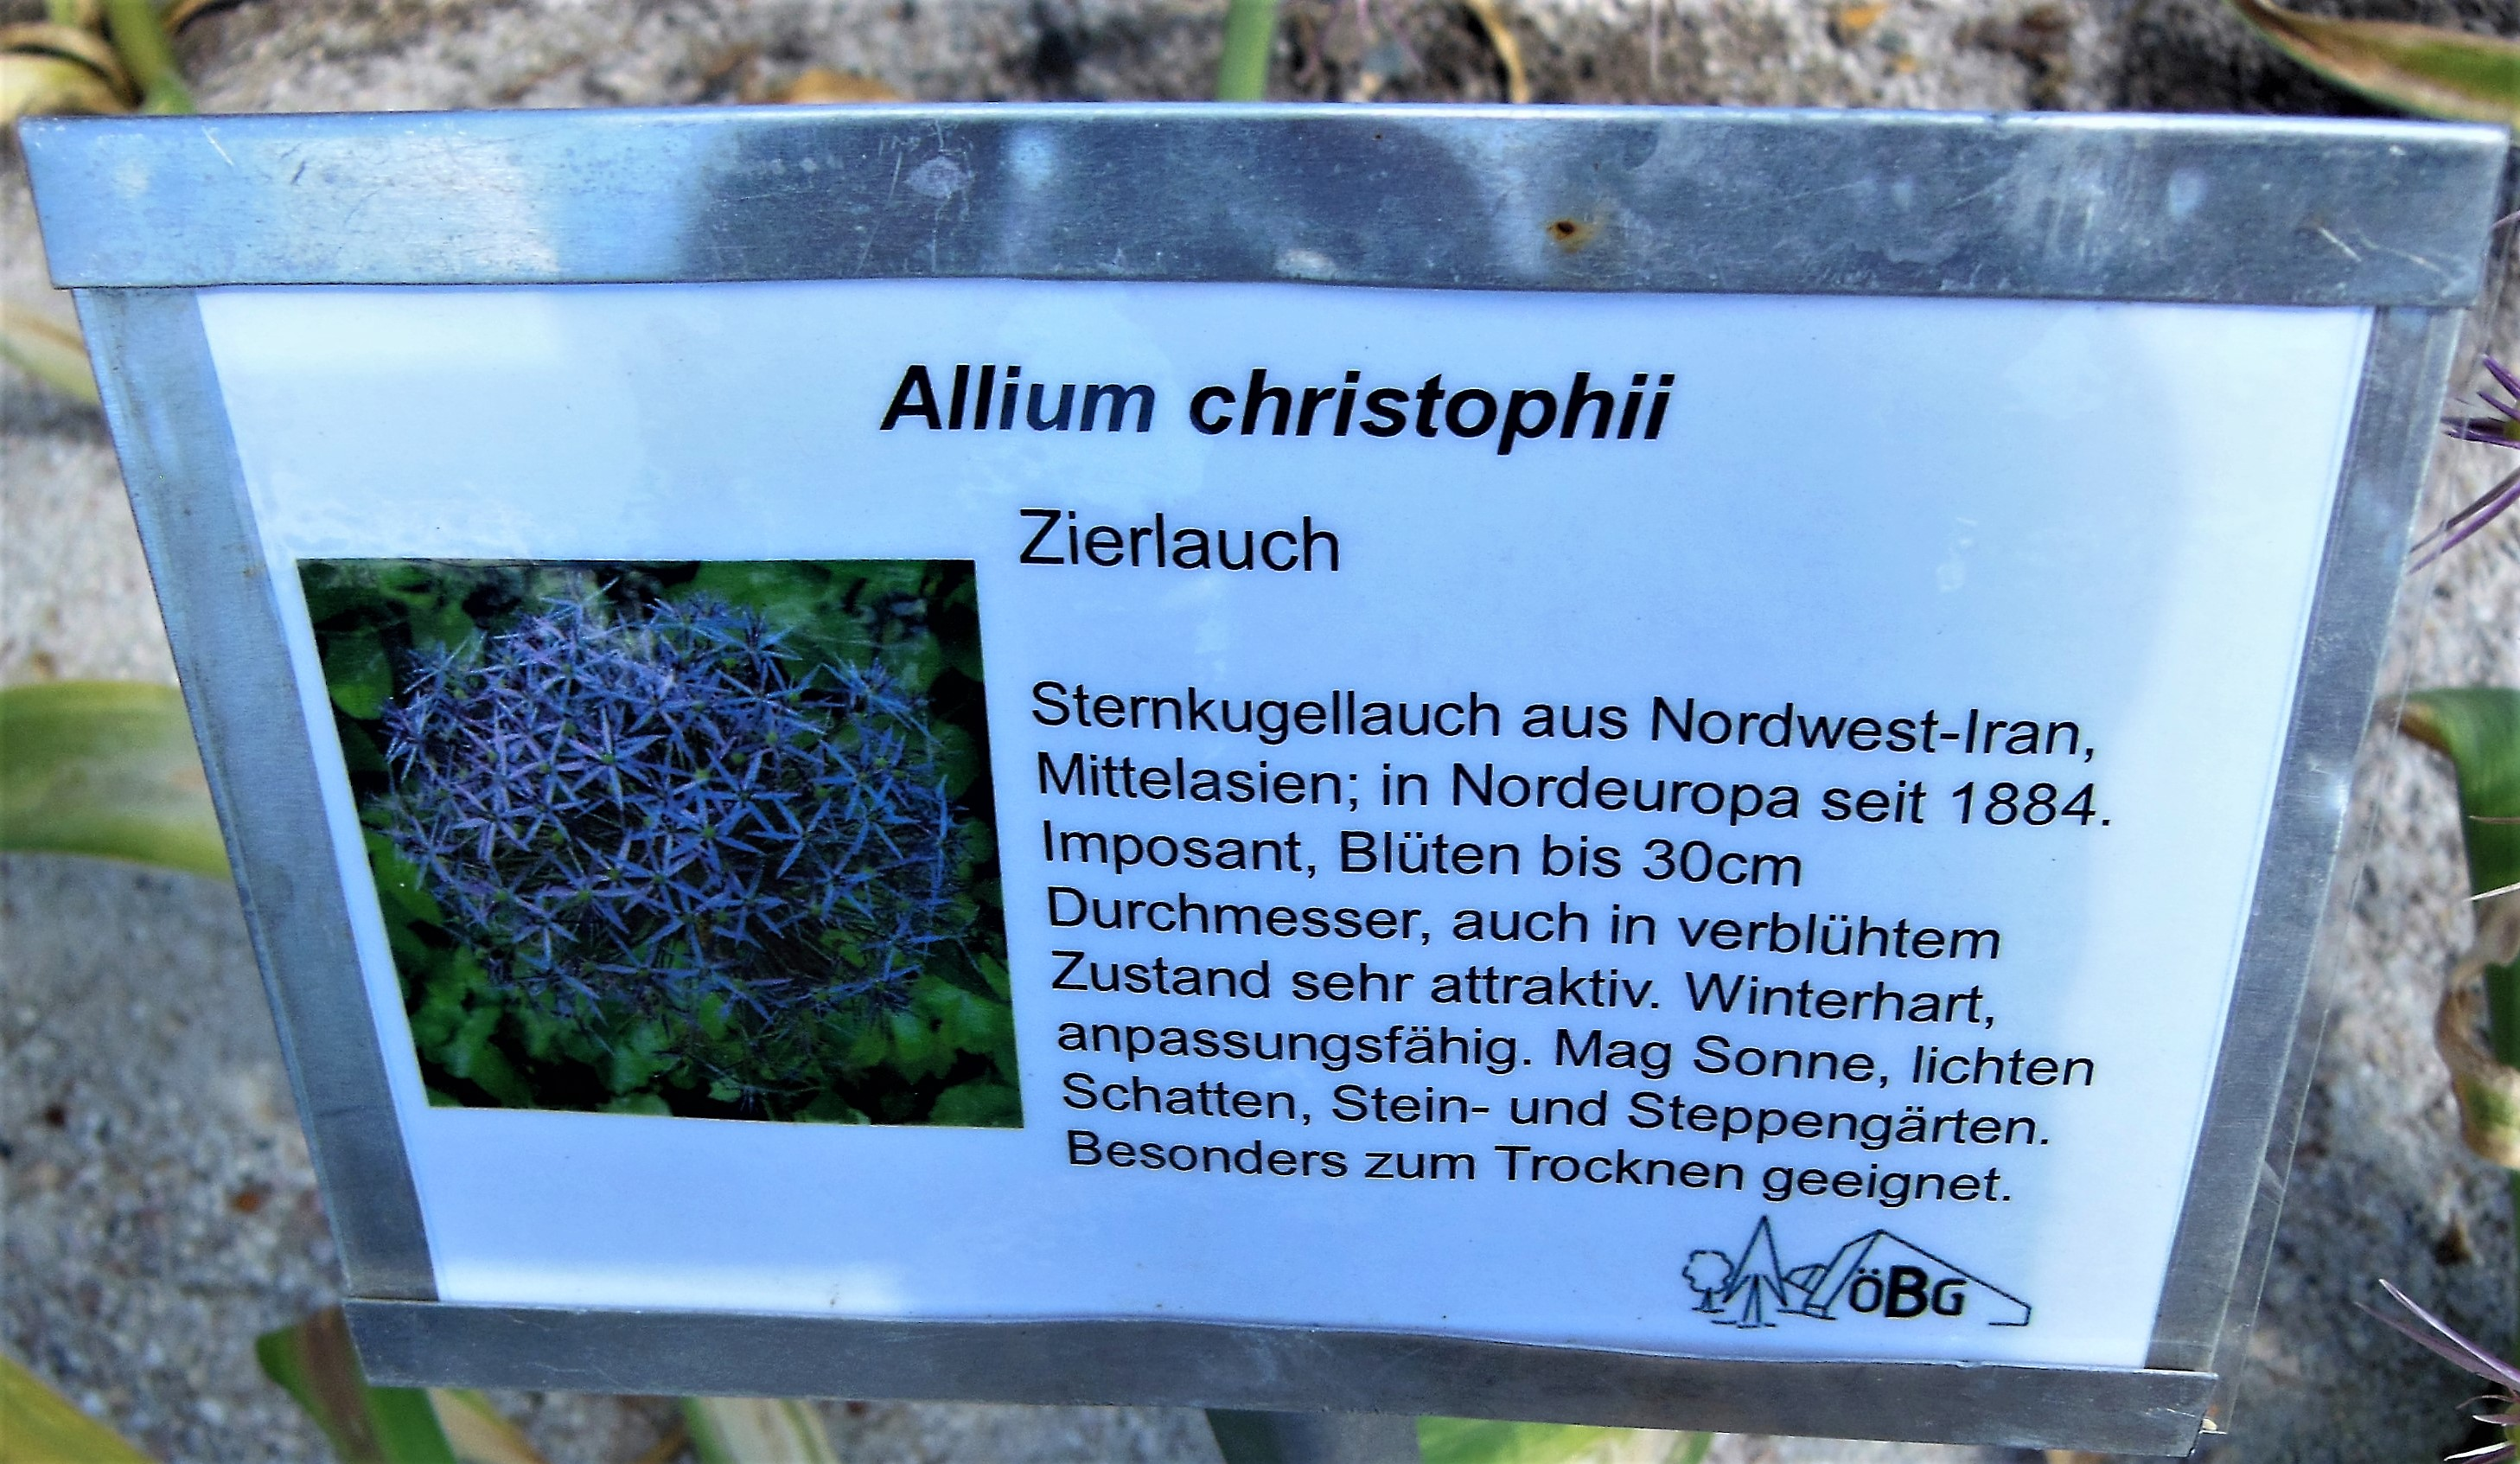 Zierlauch Trocknen File:allium Christophii Ii.jpg - Wikimedia Commons